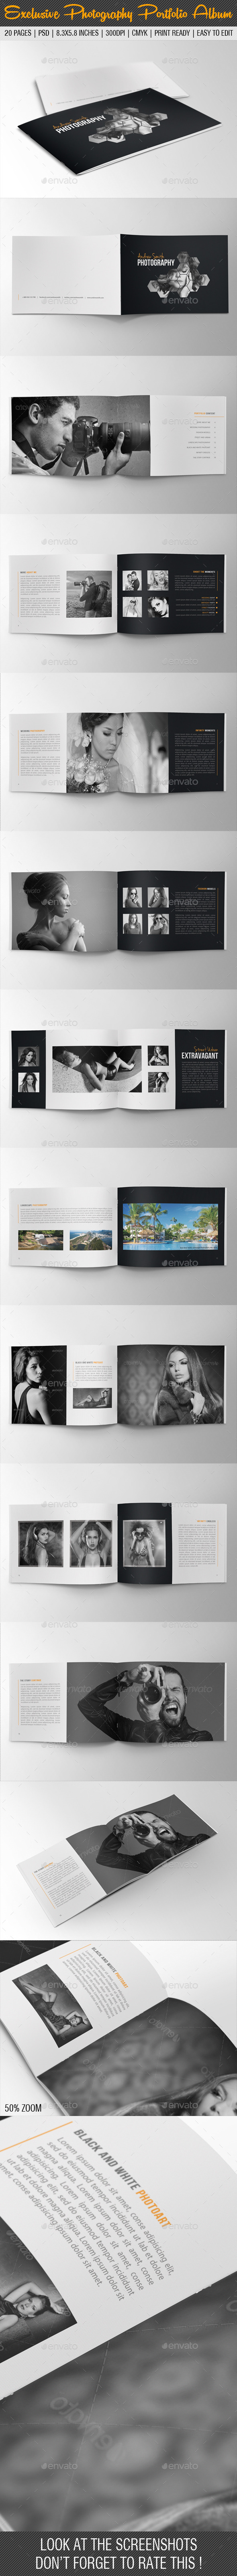 GraphicRiver Exclusive Photography Portfolio Album 06 9084738